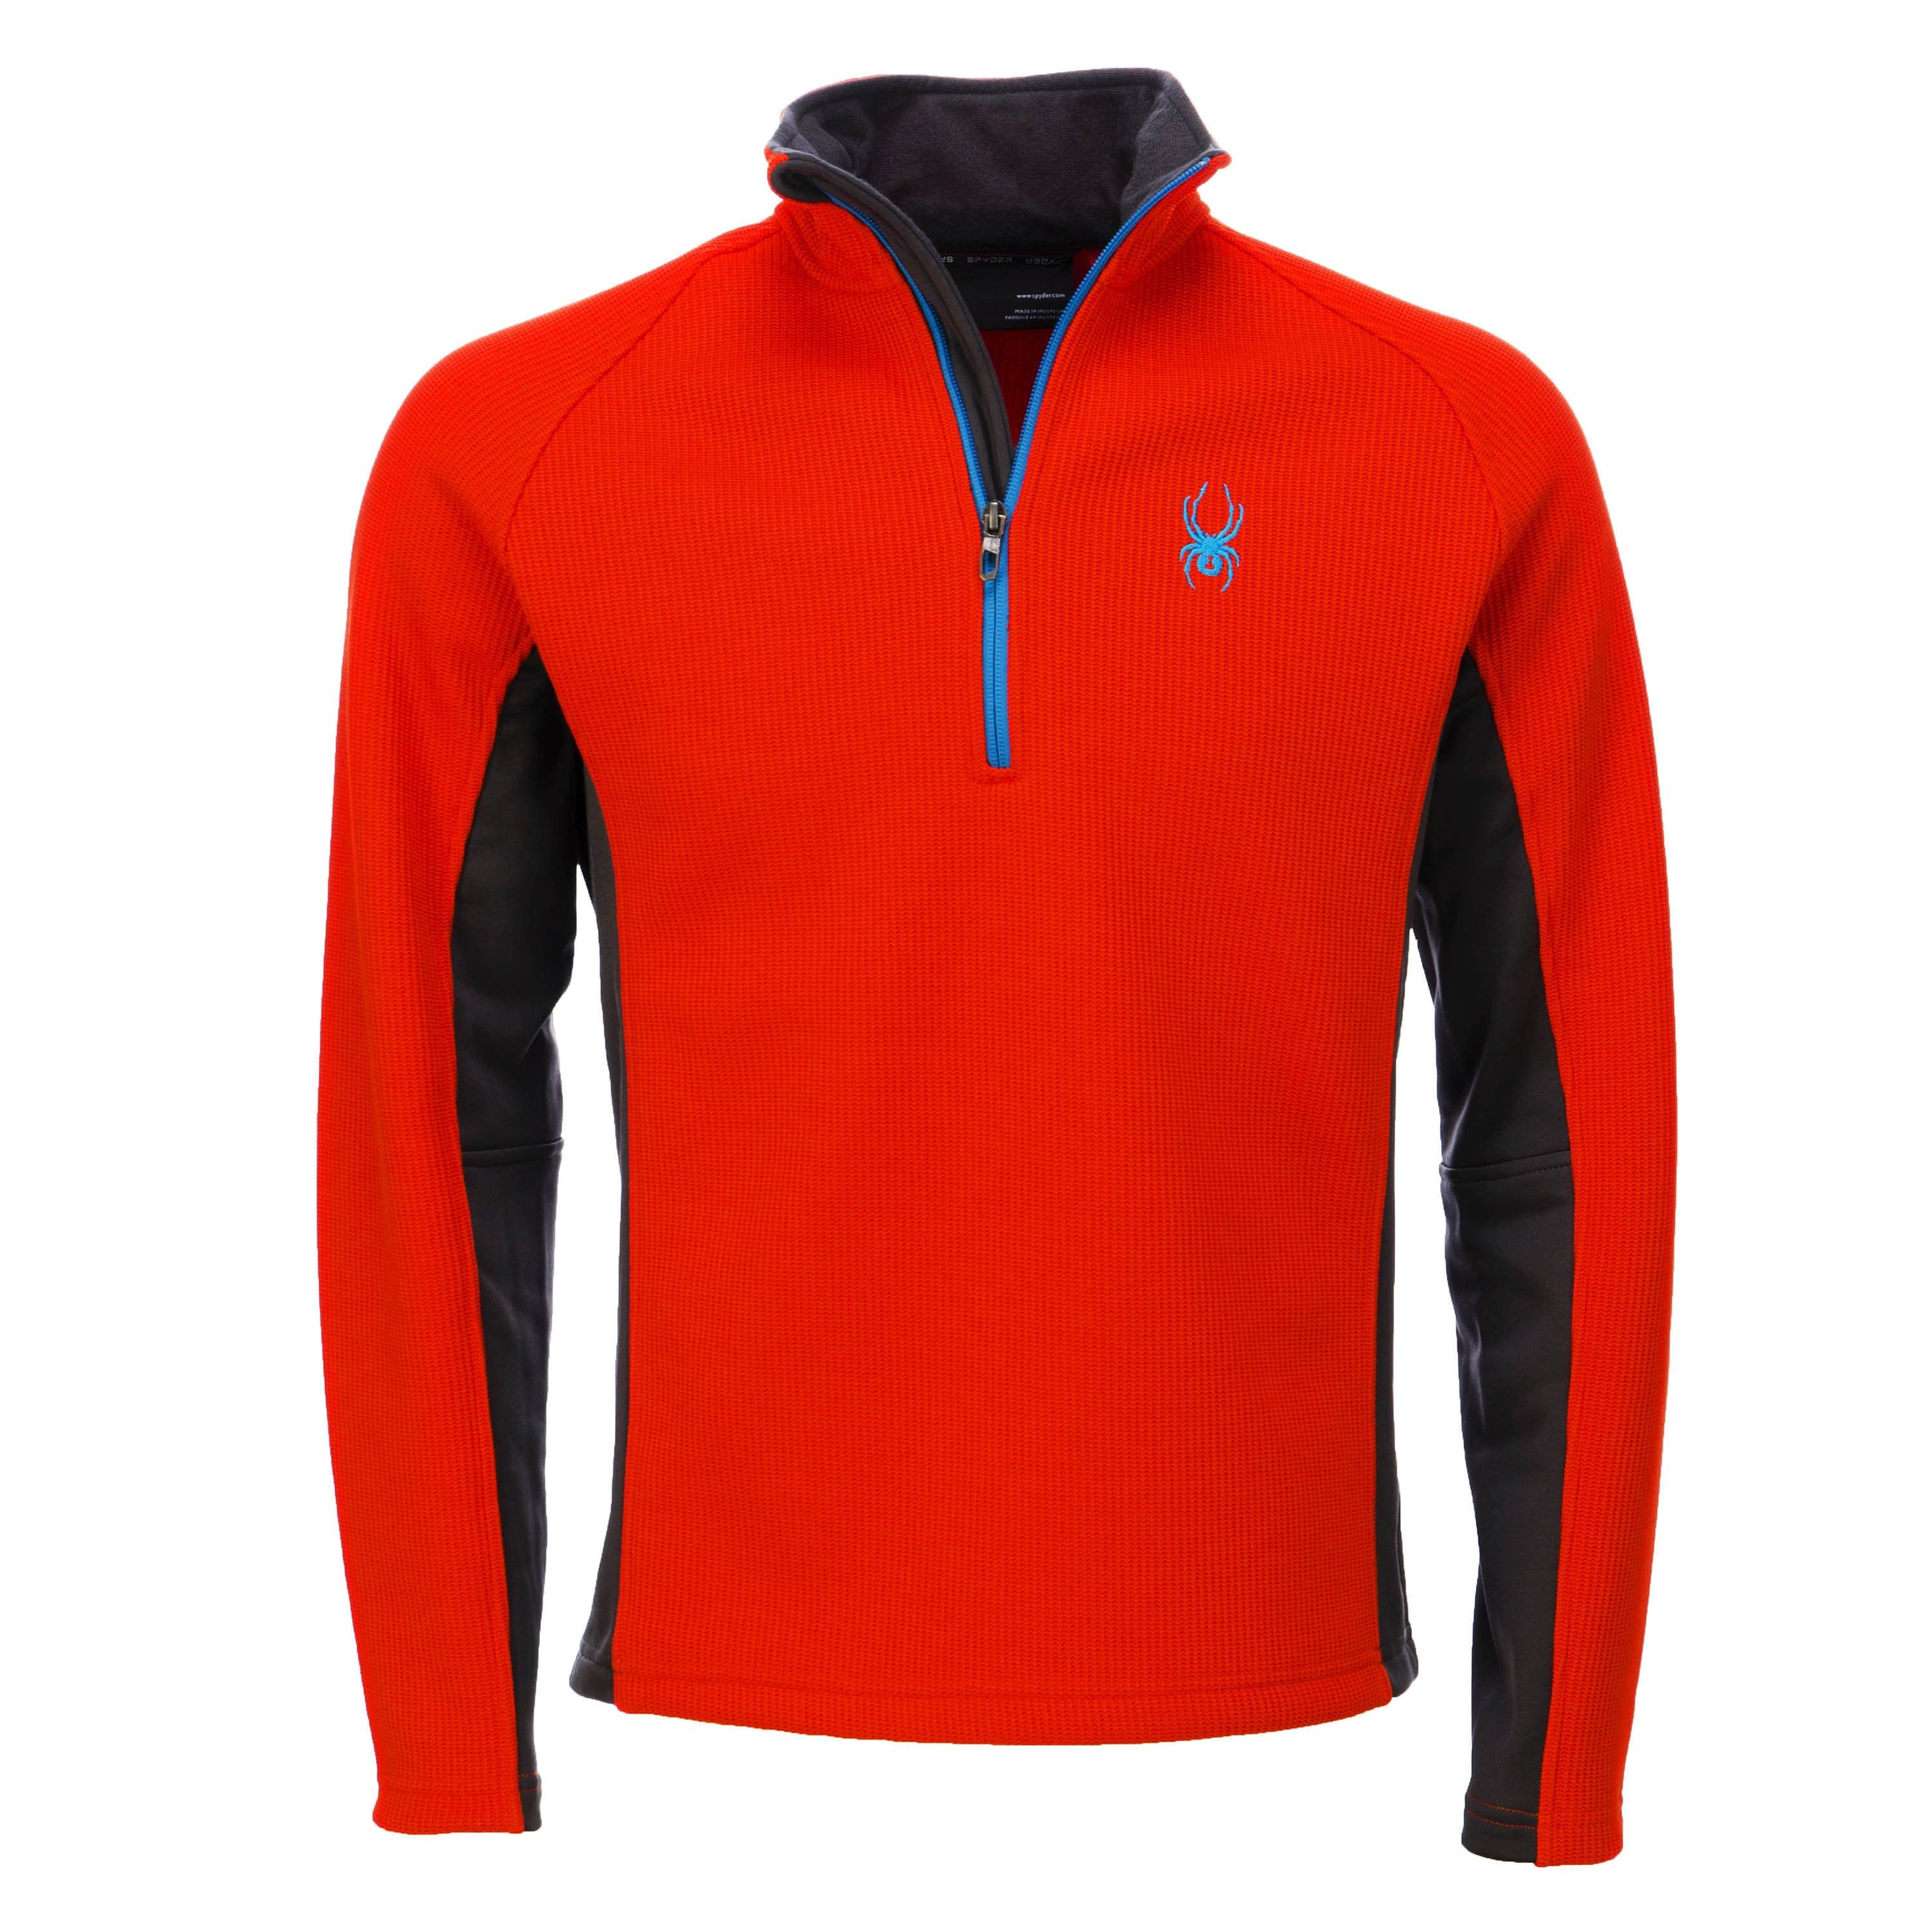 The soft fleece sweater has a warm collar to keep you warm It is a